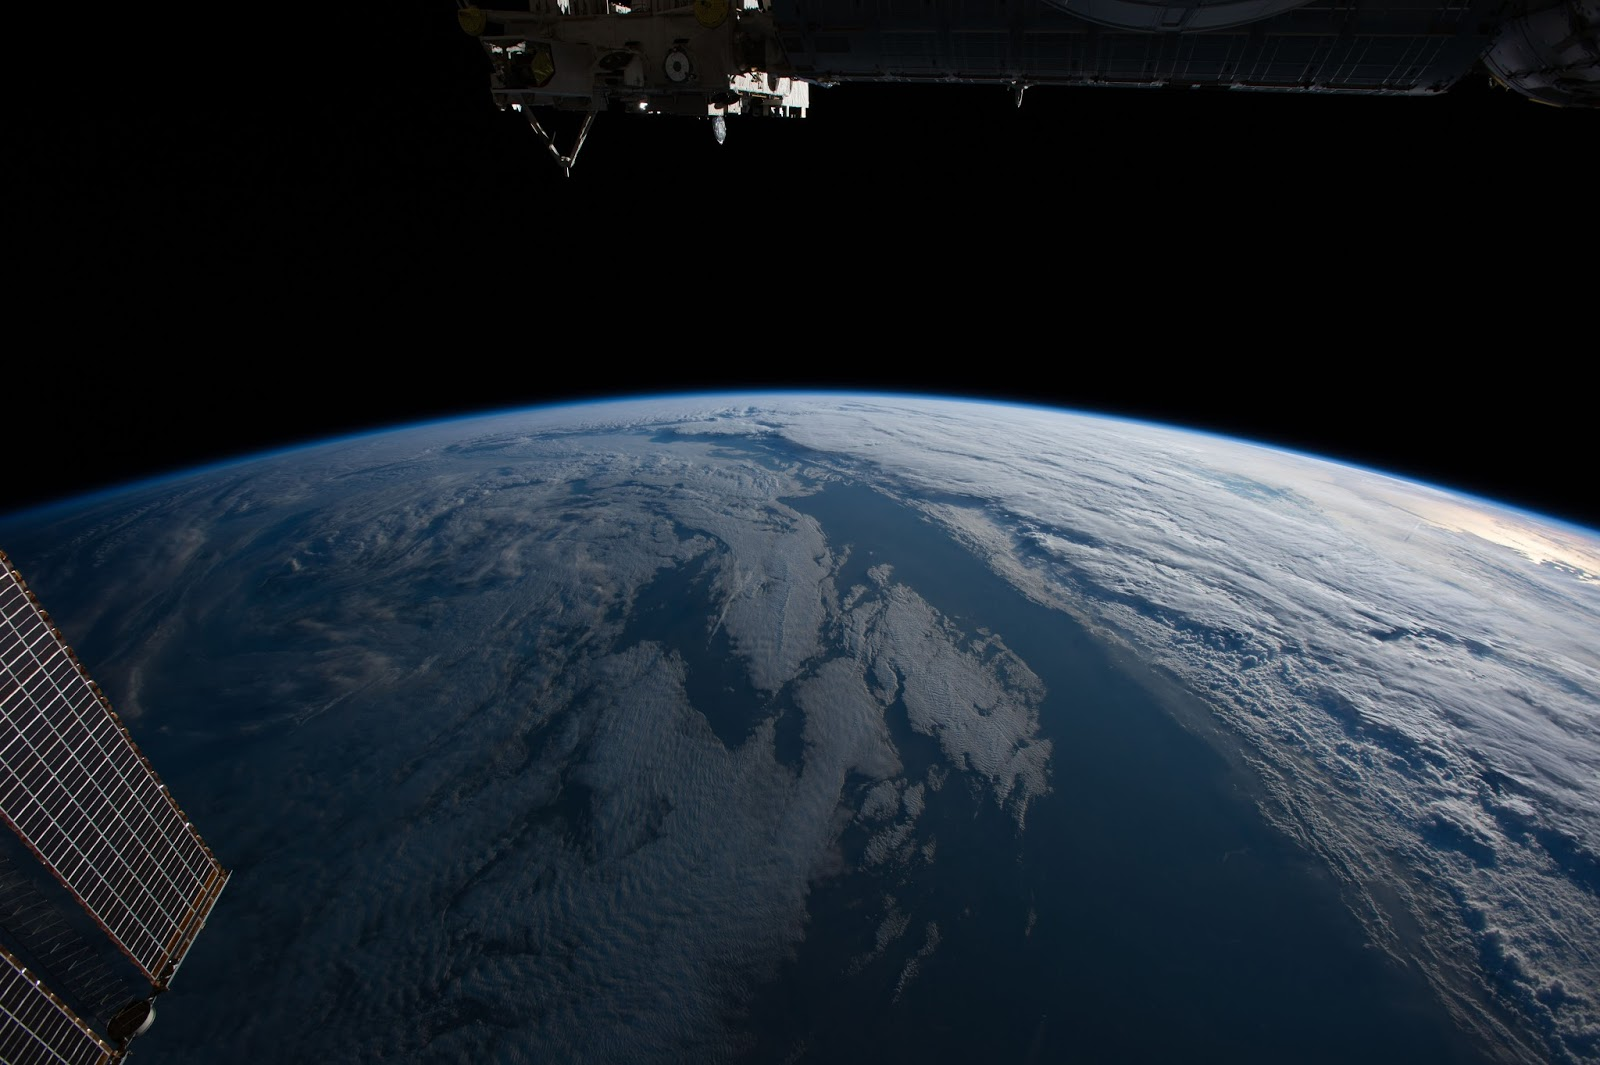 earthcam nasa - photo #7